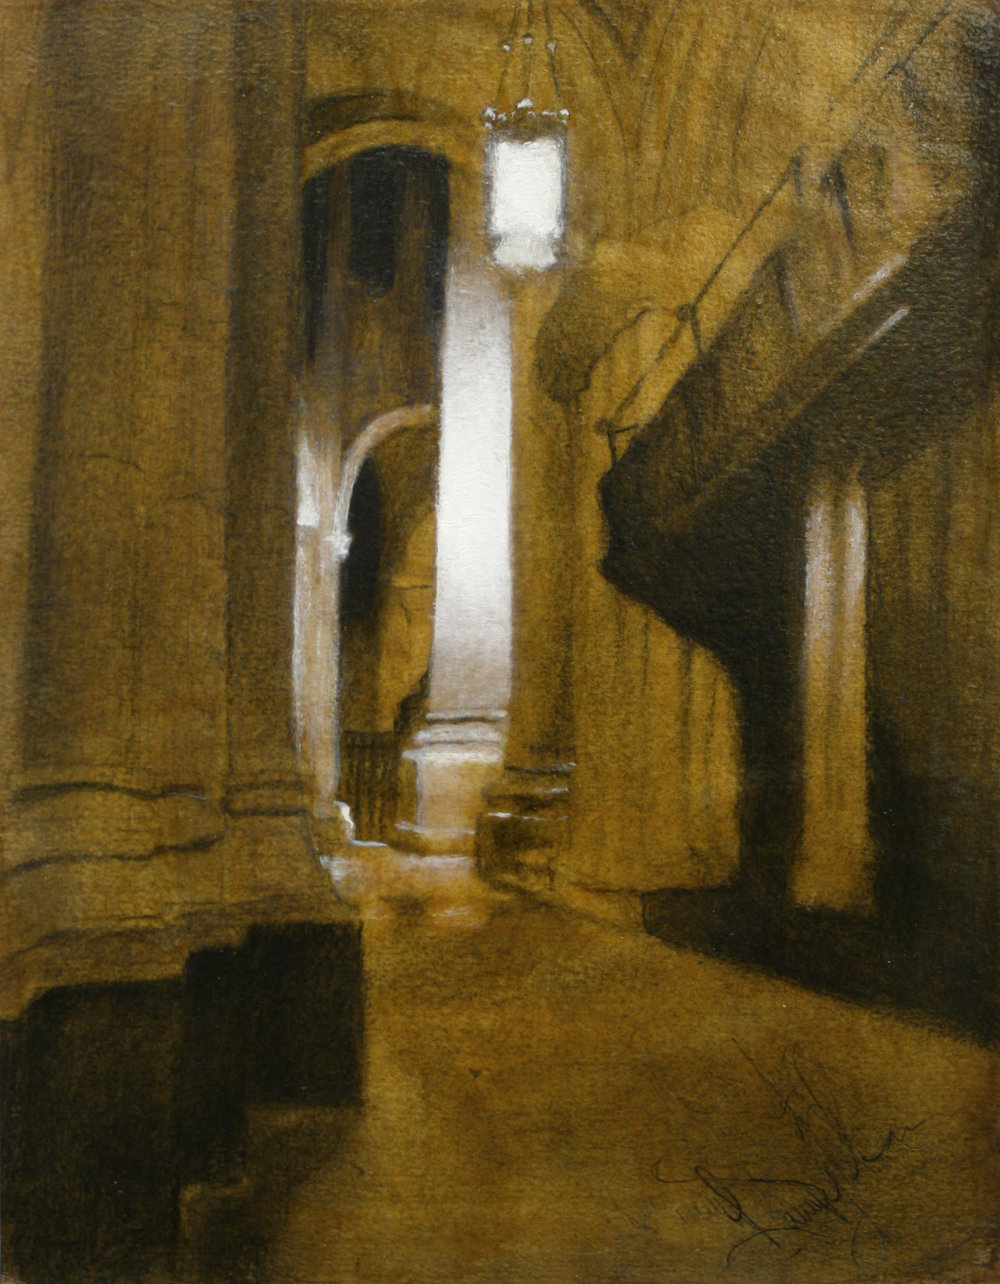 """Cathedral of Saint John the Divine, graphite and charcoal on paper shellacked over with oil paint accents mounted on wood, 14""""x11""""x1"""", 2014 (sold)"""